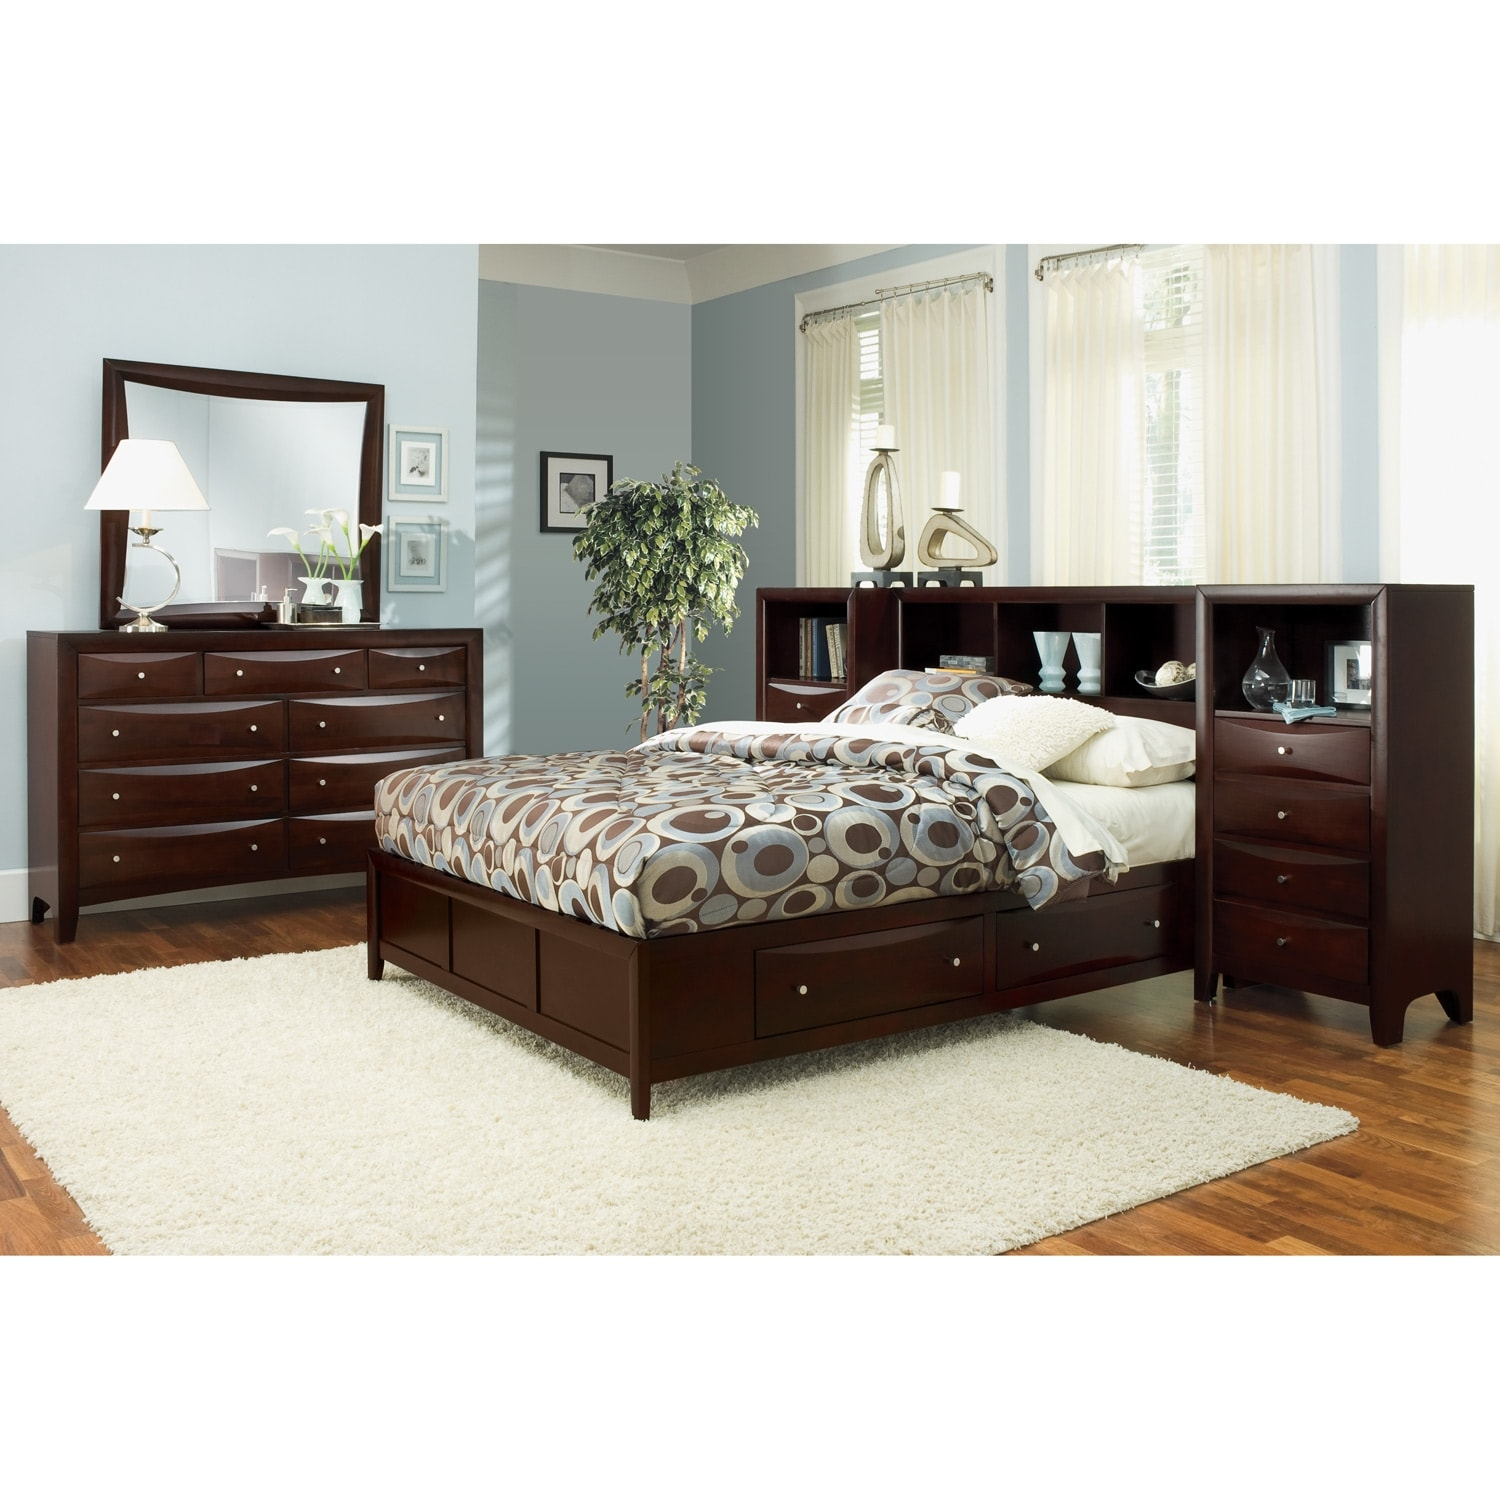 Solid Wood Bedroom Suites Wood Bedroom Suite Headboard Rosemary Full Size Cherry Slat Beds